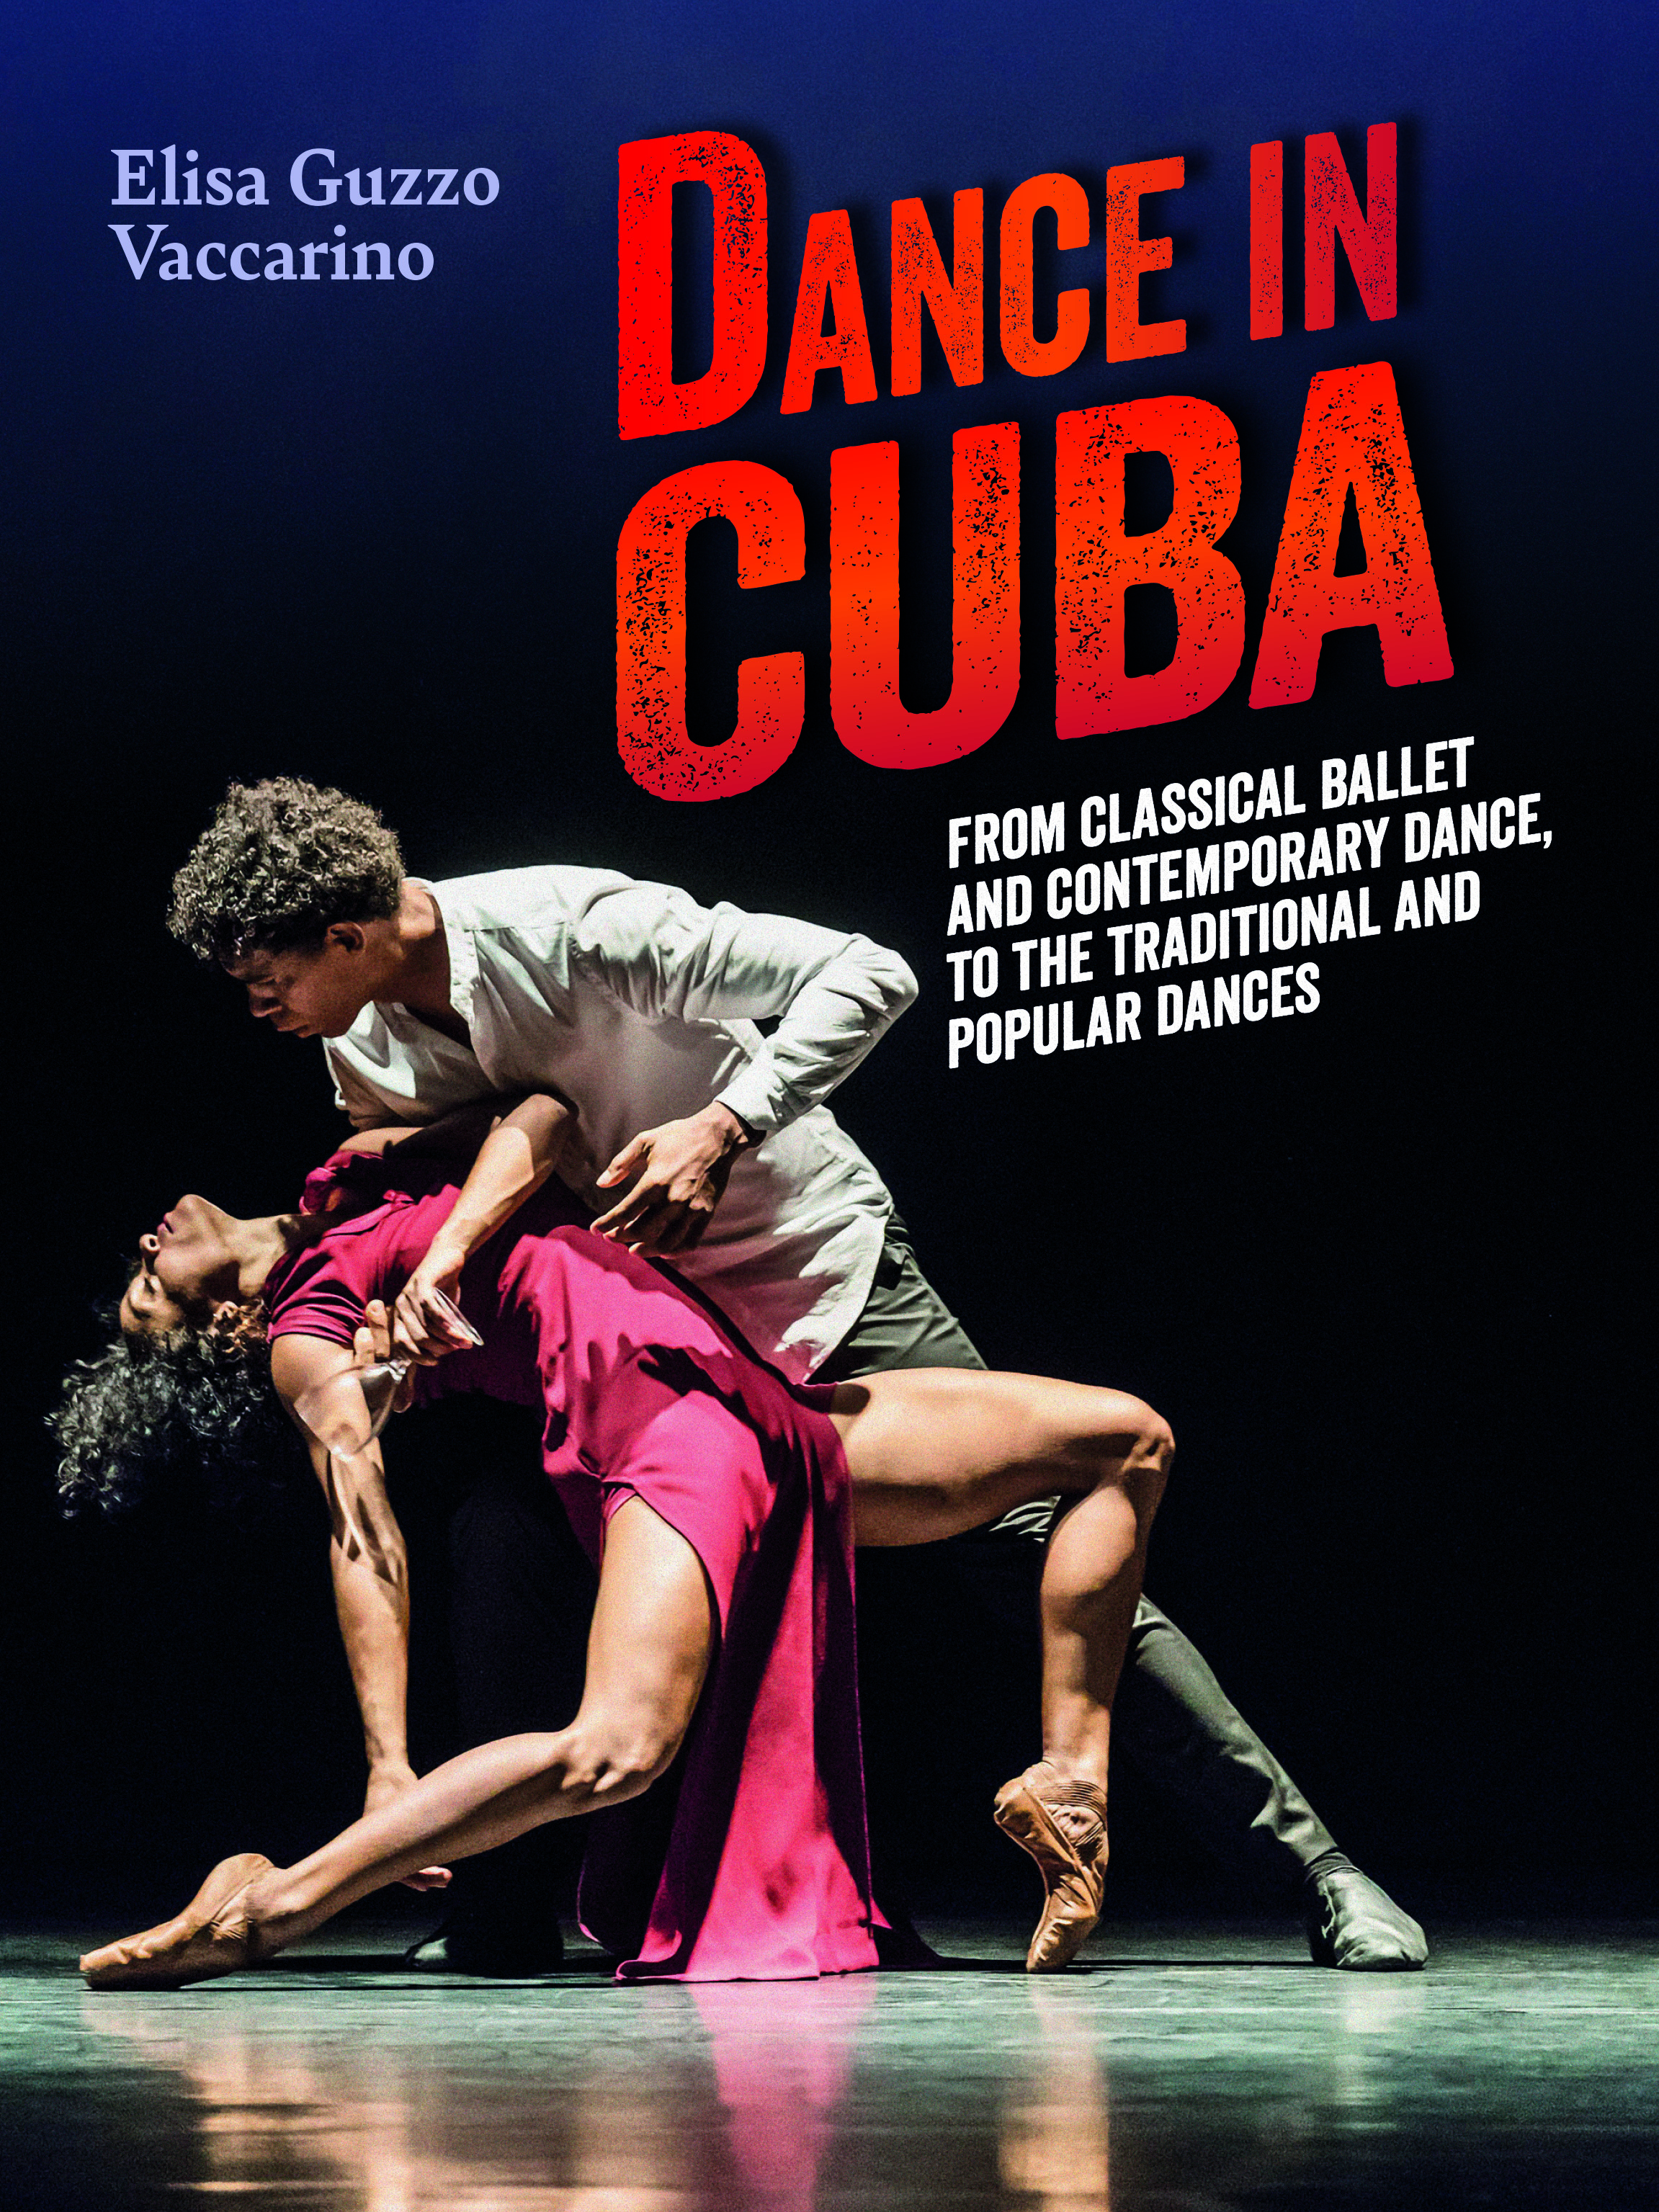 Cuba Danza (Dance in Cuba – From classical ballet and contemporary dance, to the traditional and popular dances)